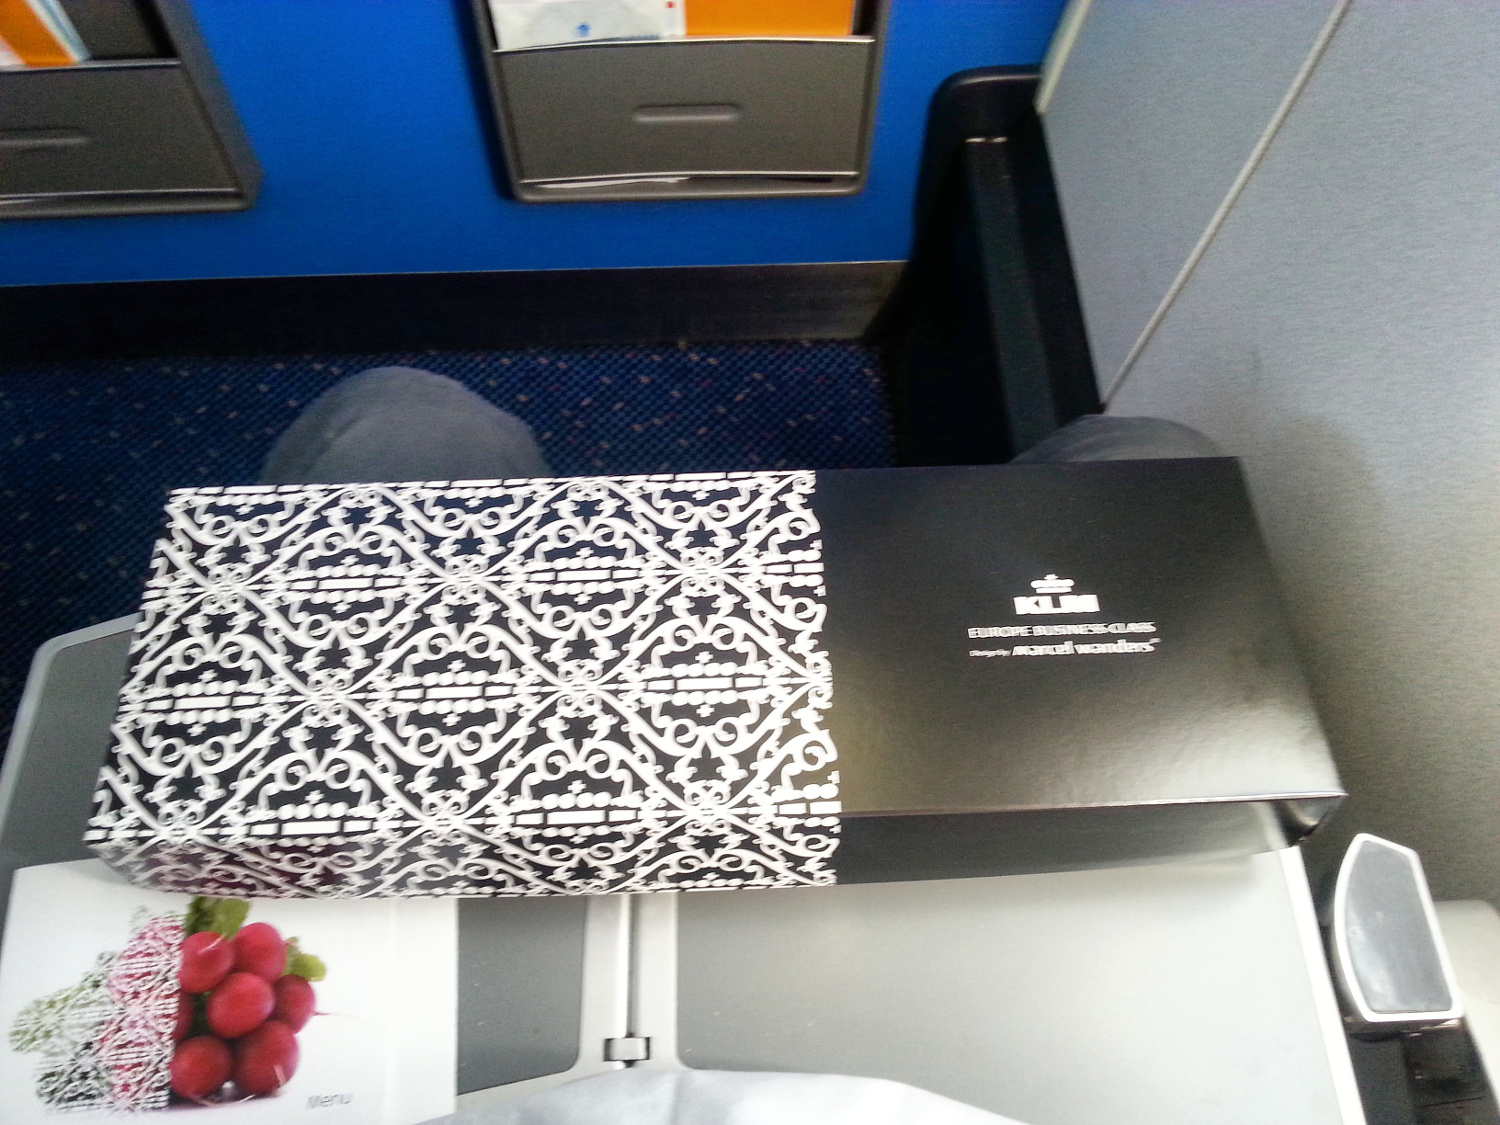 Lunch in Business class on KLM Cityhopper1